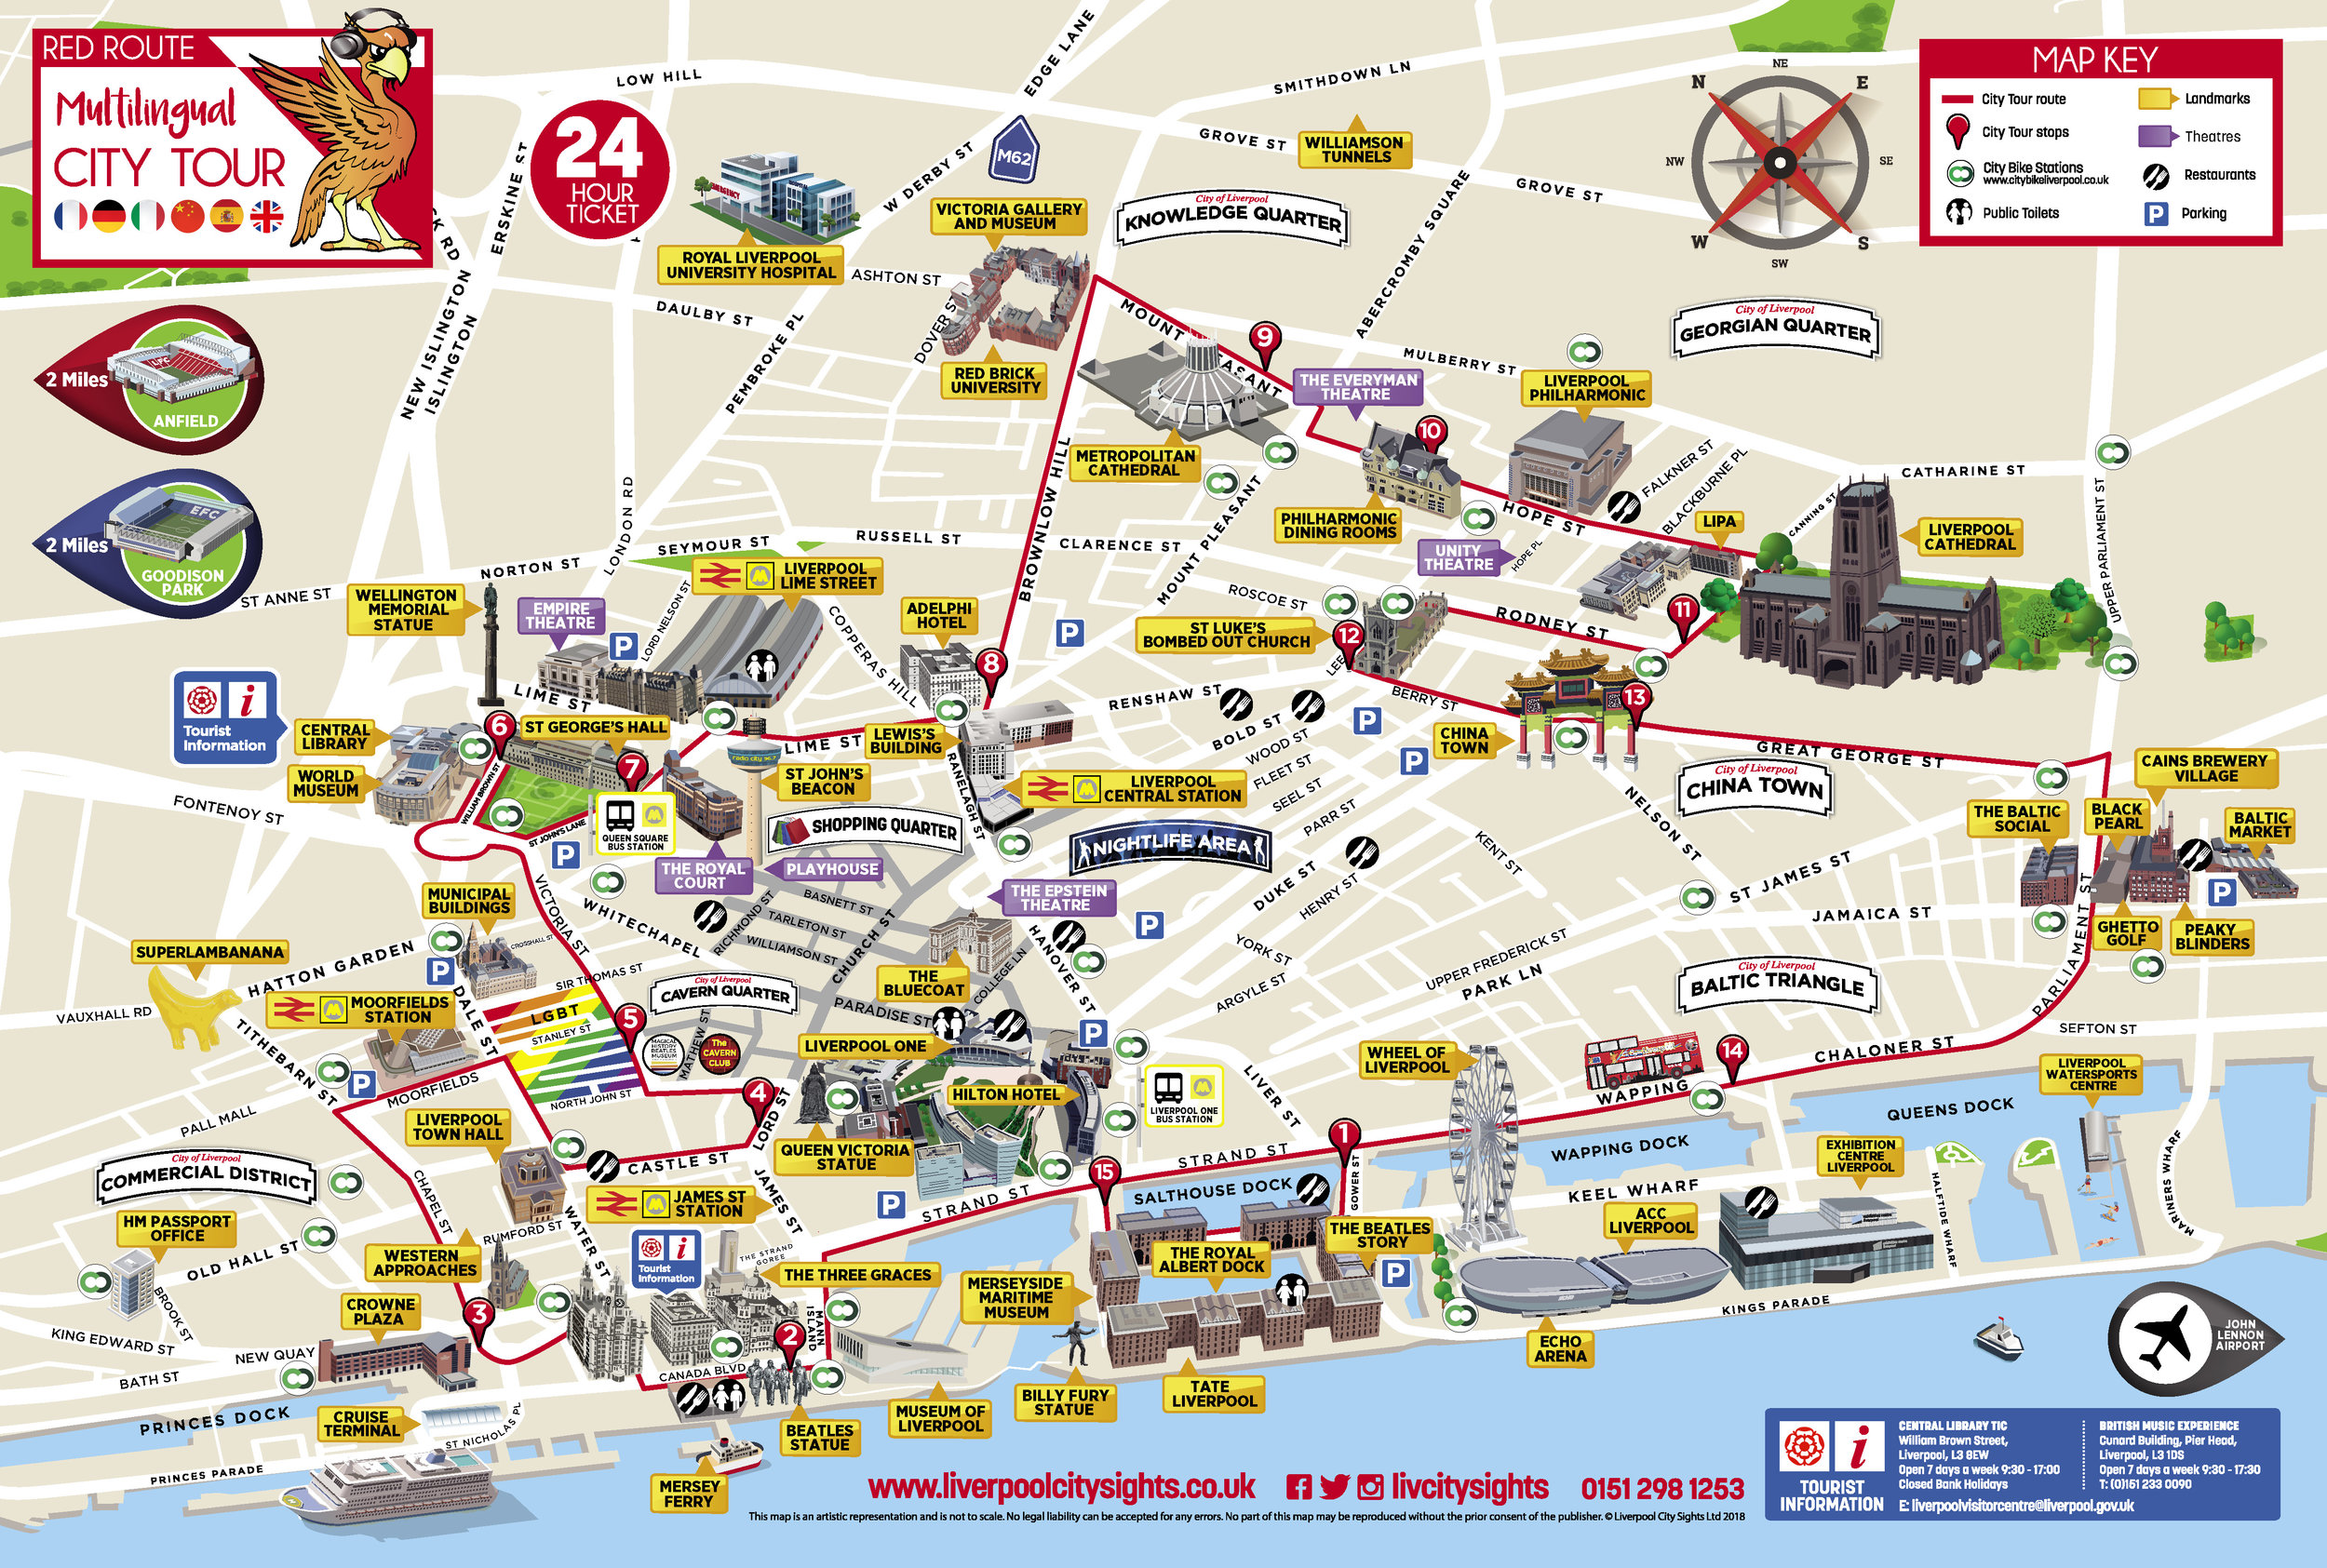 Red route map website.jpg